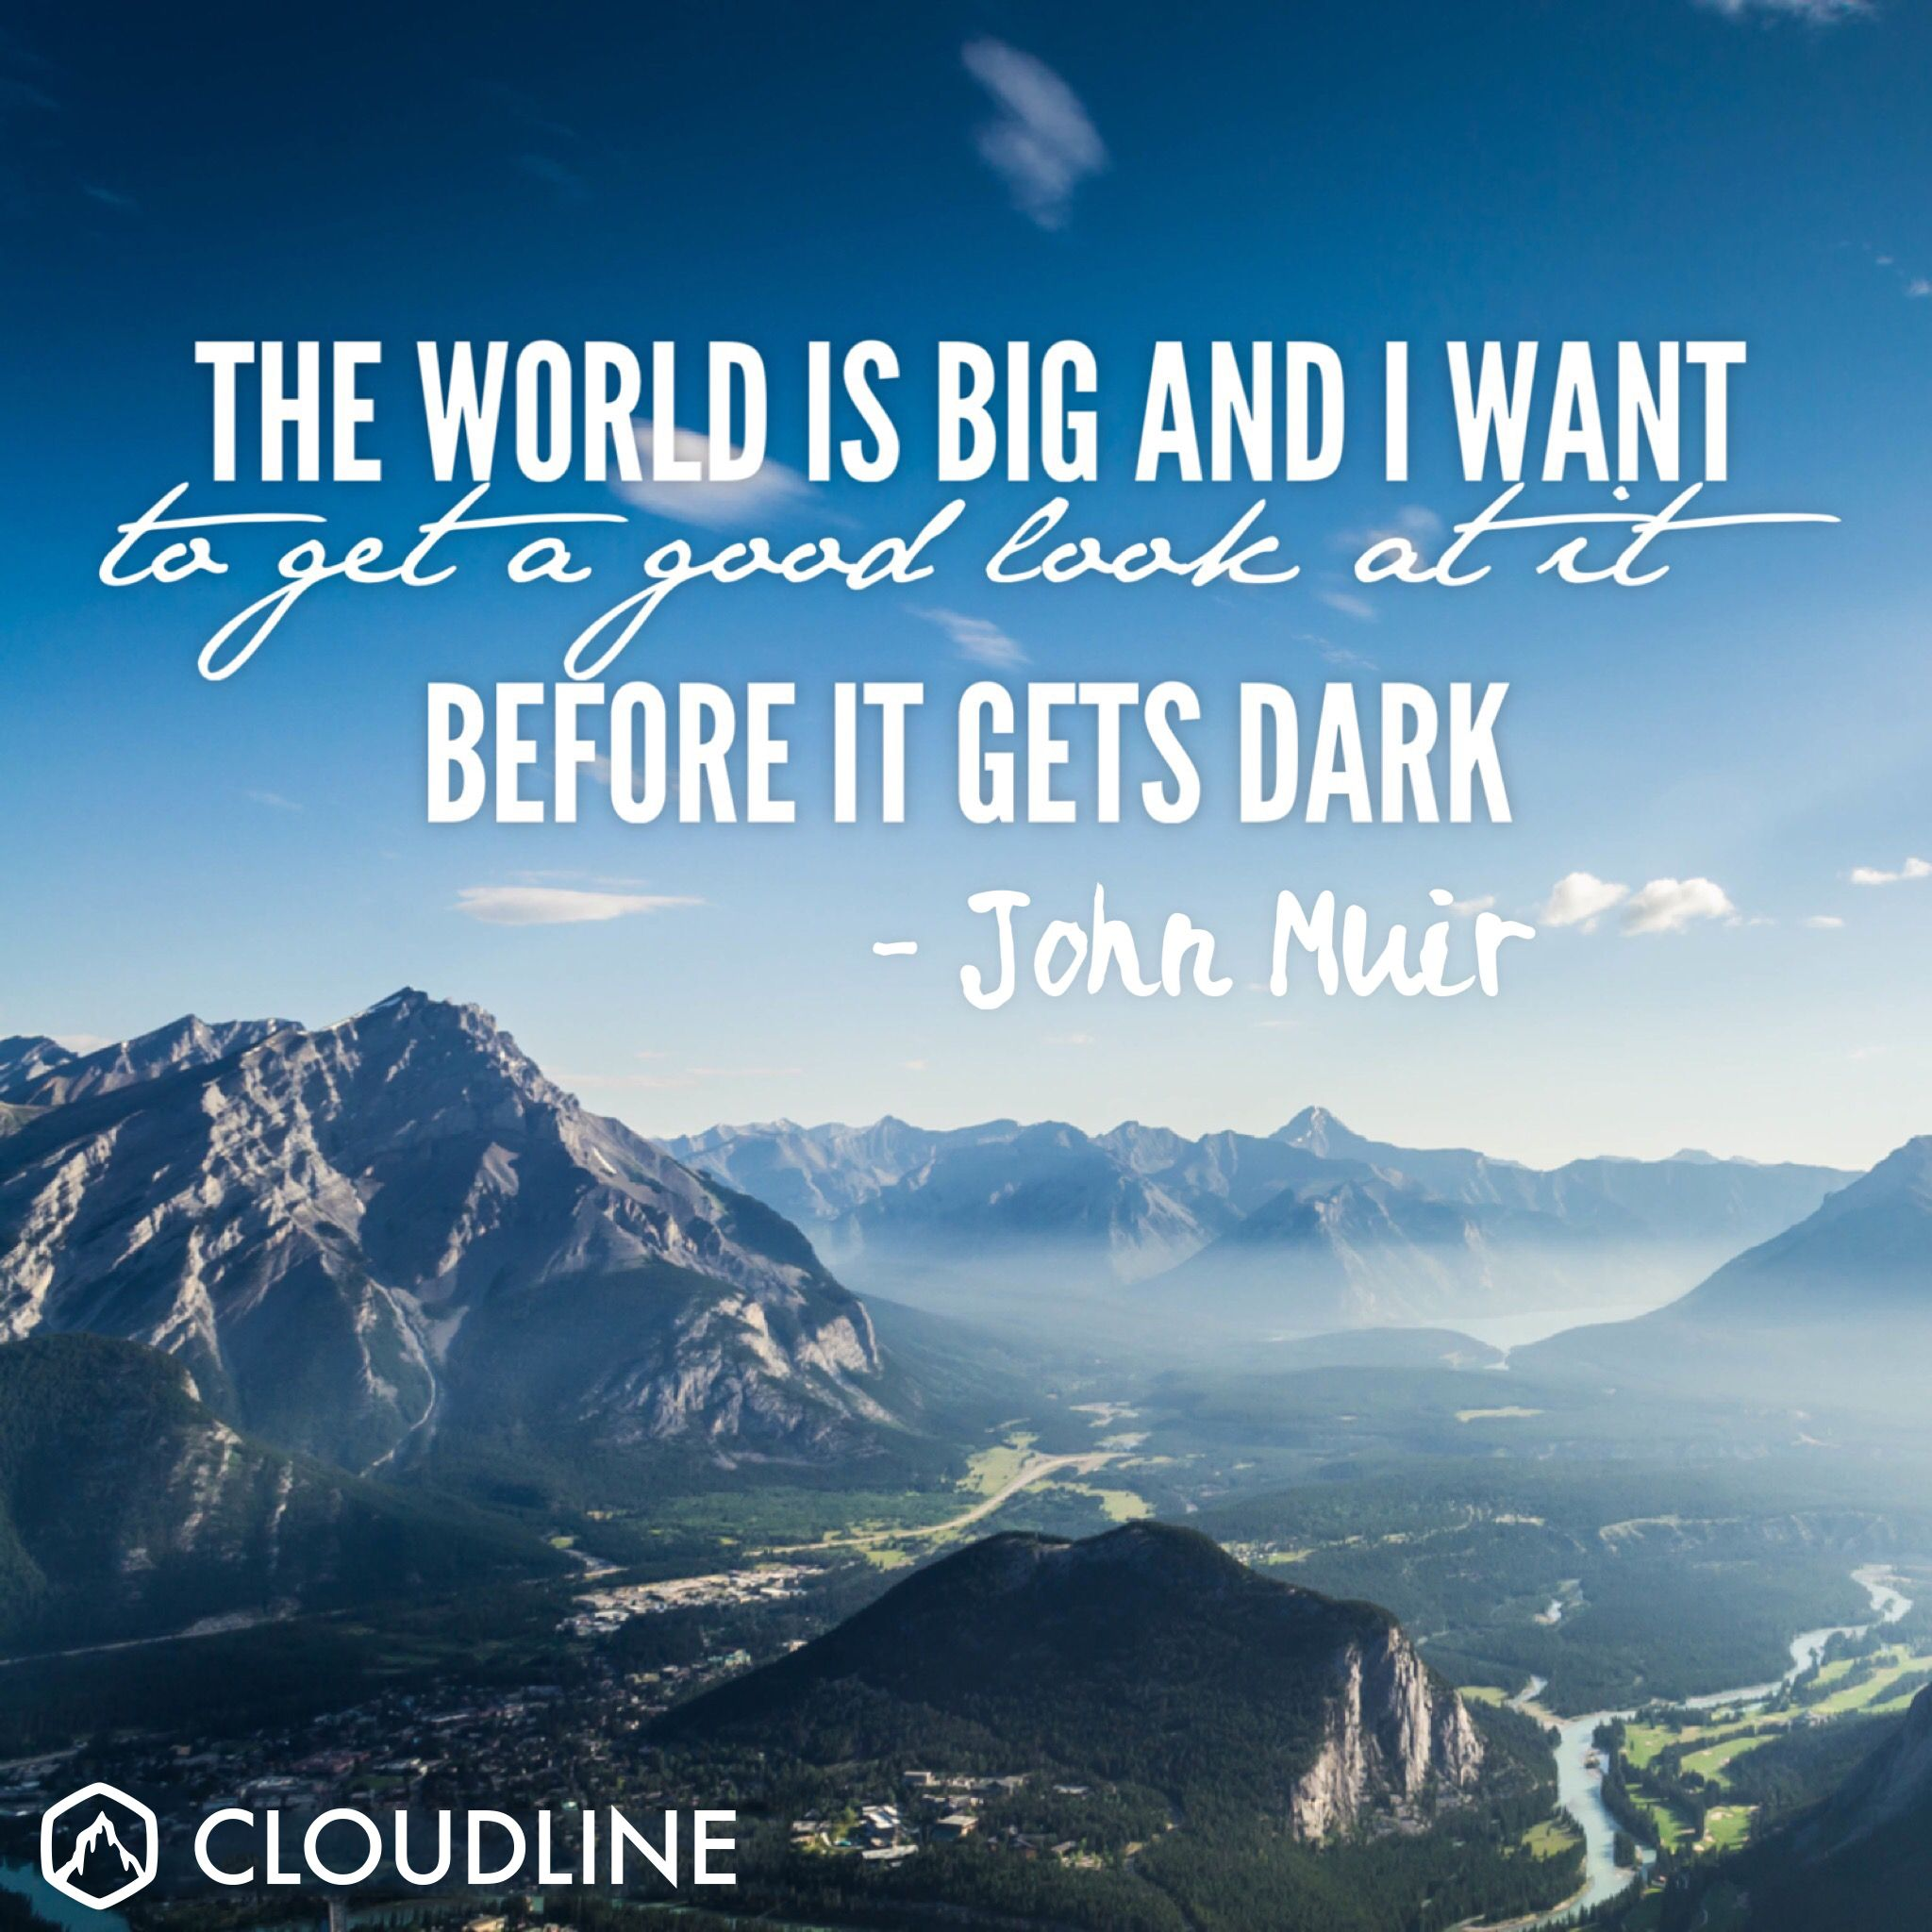 5 John Muir Quotes That Will Make You Want To Go Hiking